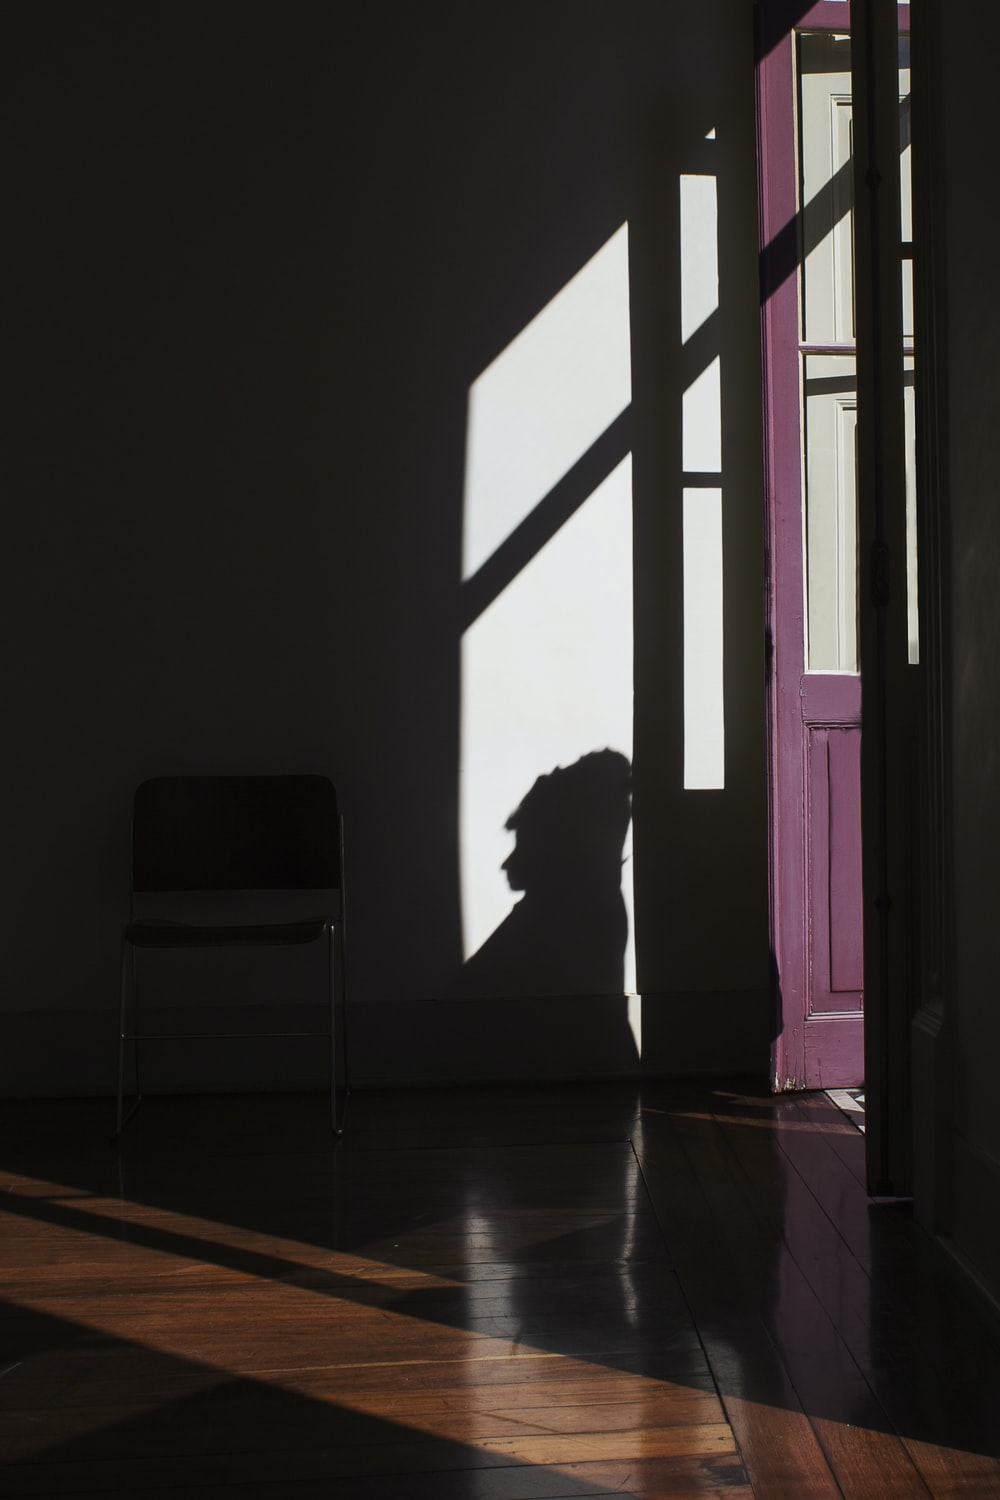 silhouette of person on wall